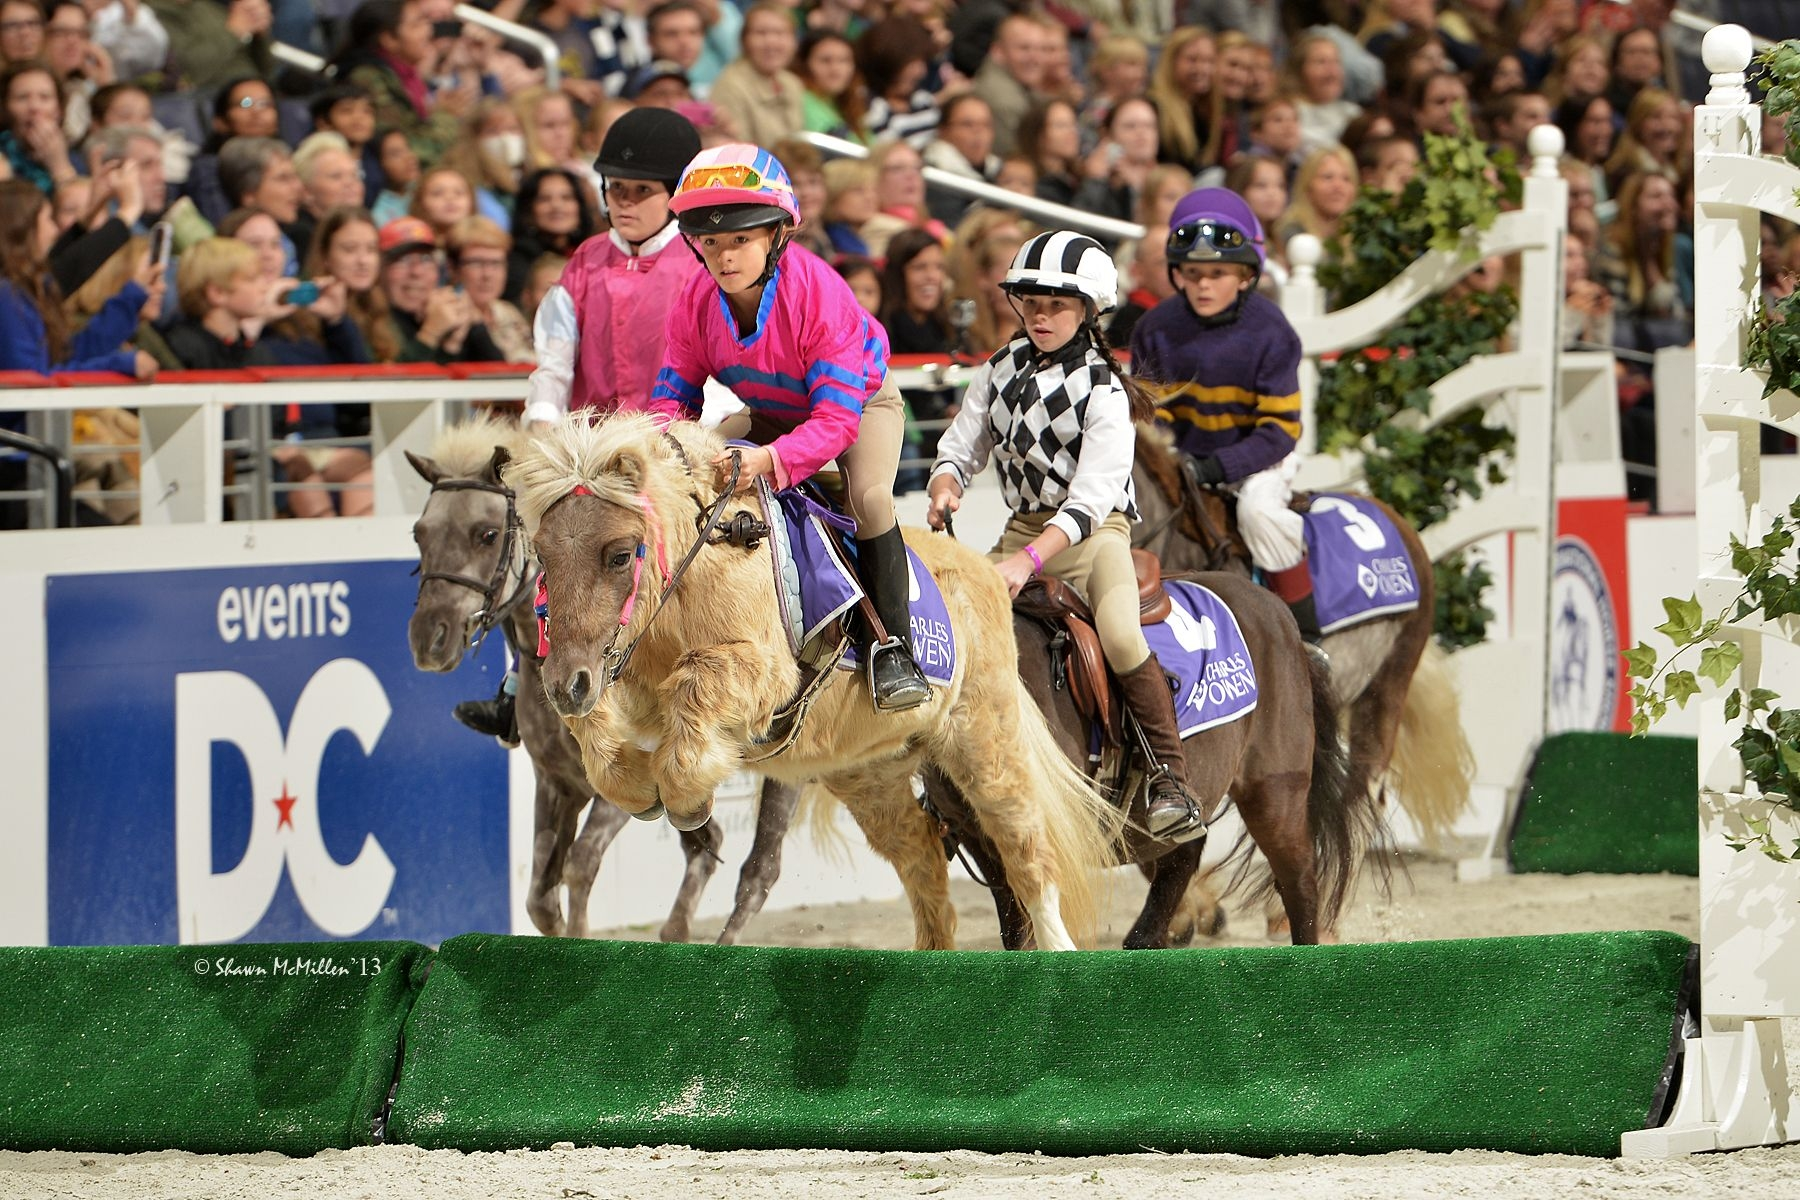 Junior Jockeys will compete in the WIHS Shetland Pony Steeplechase Championship Series, presented by Charles Owen, on Thursday and Saturday nights.<br><b>Photo by <a href='http://www.shawnmcmillen.com/' target='_blank'>Shawn McMillen Photography</a></b>